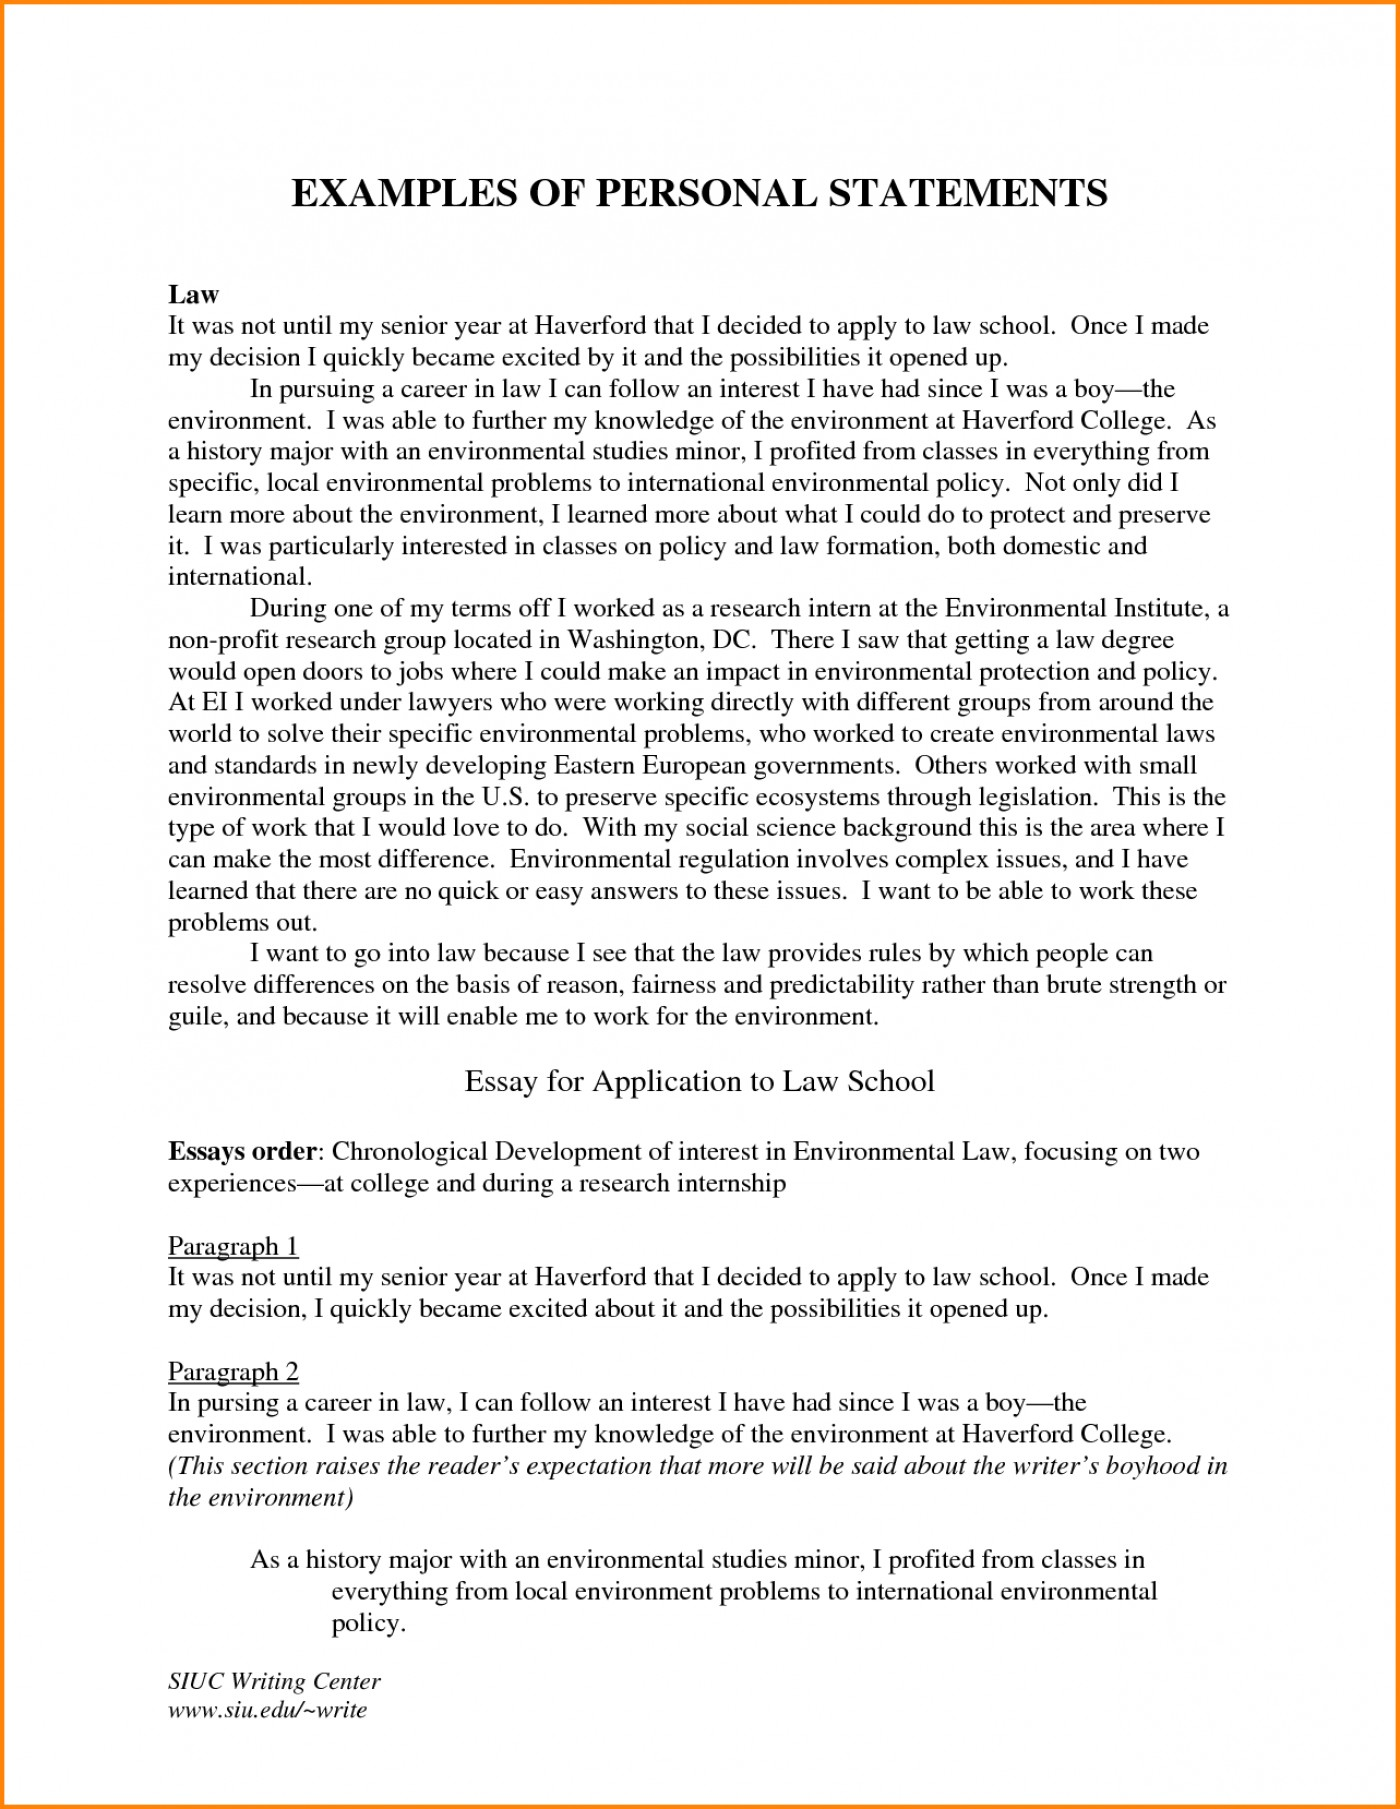 008 Appic Essay Examples Example Internship Sample Personal